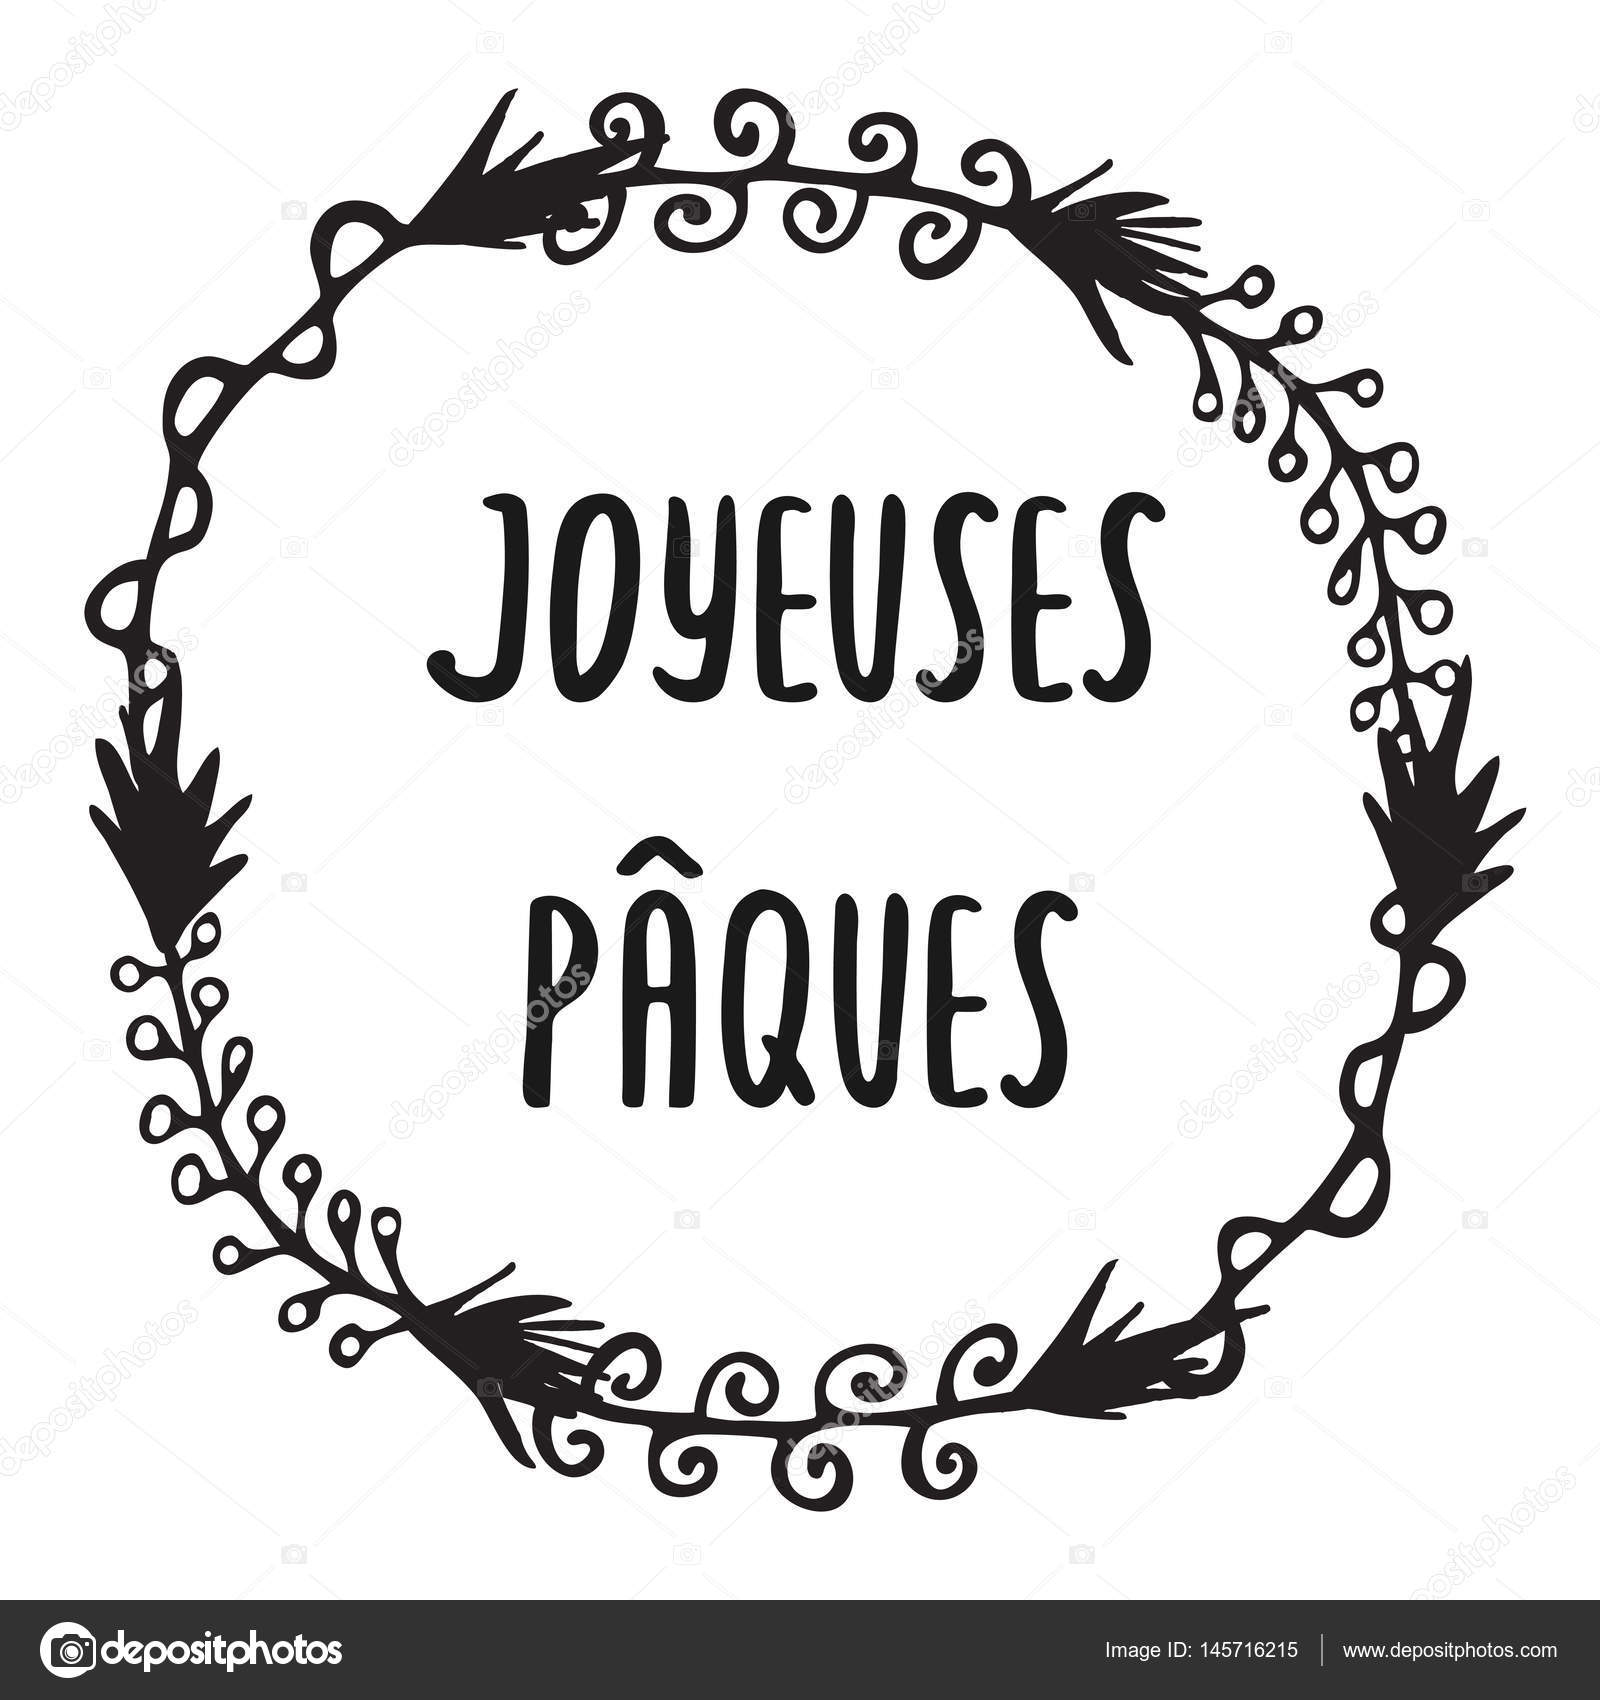 French easter greeting card joyeuses paques stock vector ircy french easter greeting card joyeuses paques stock vector m4hsunfo